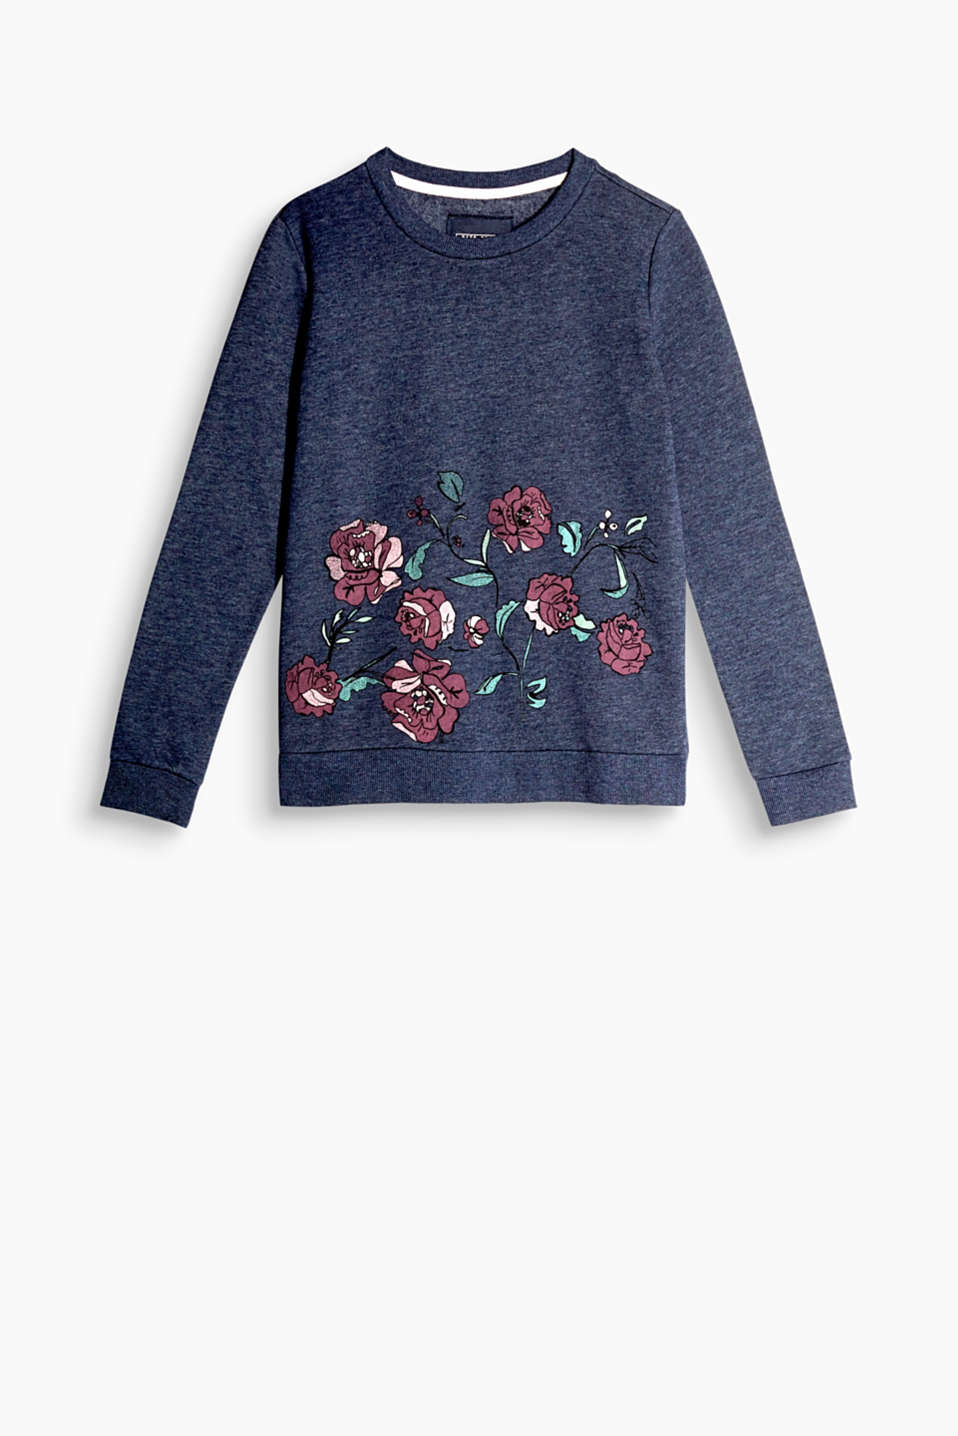 Blød sweatshirt med smart blomsterprint